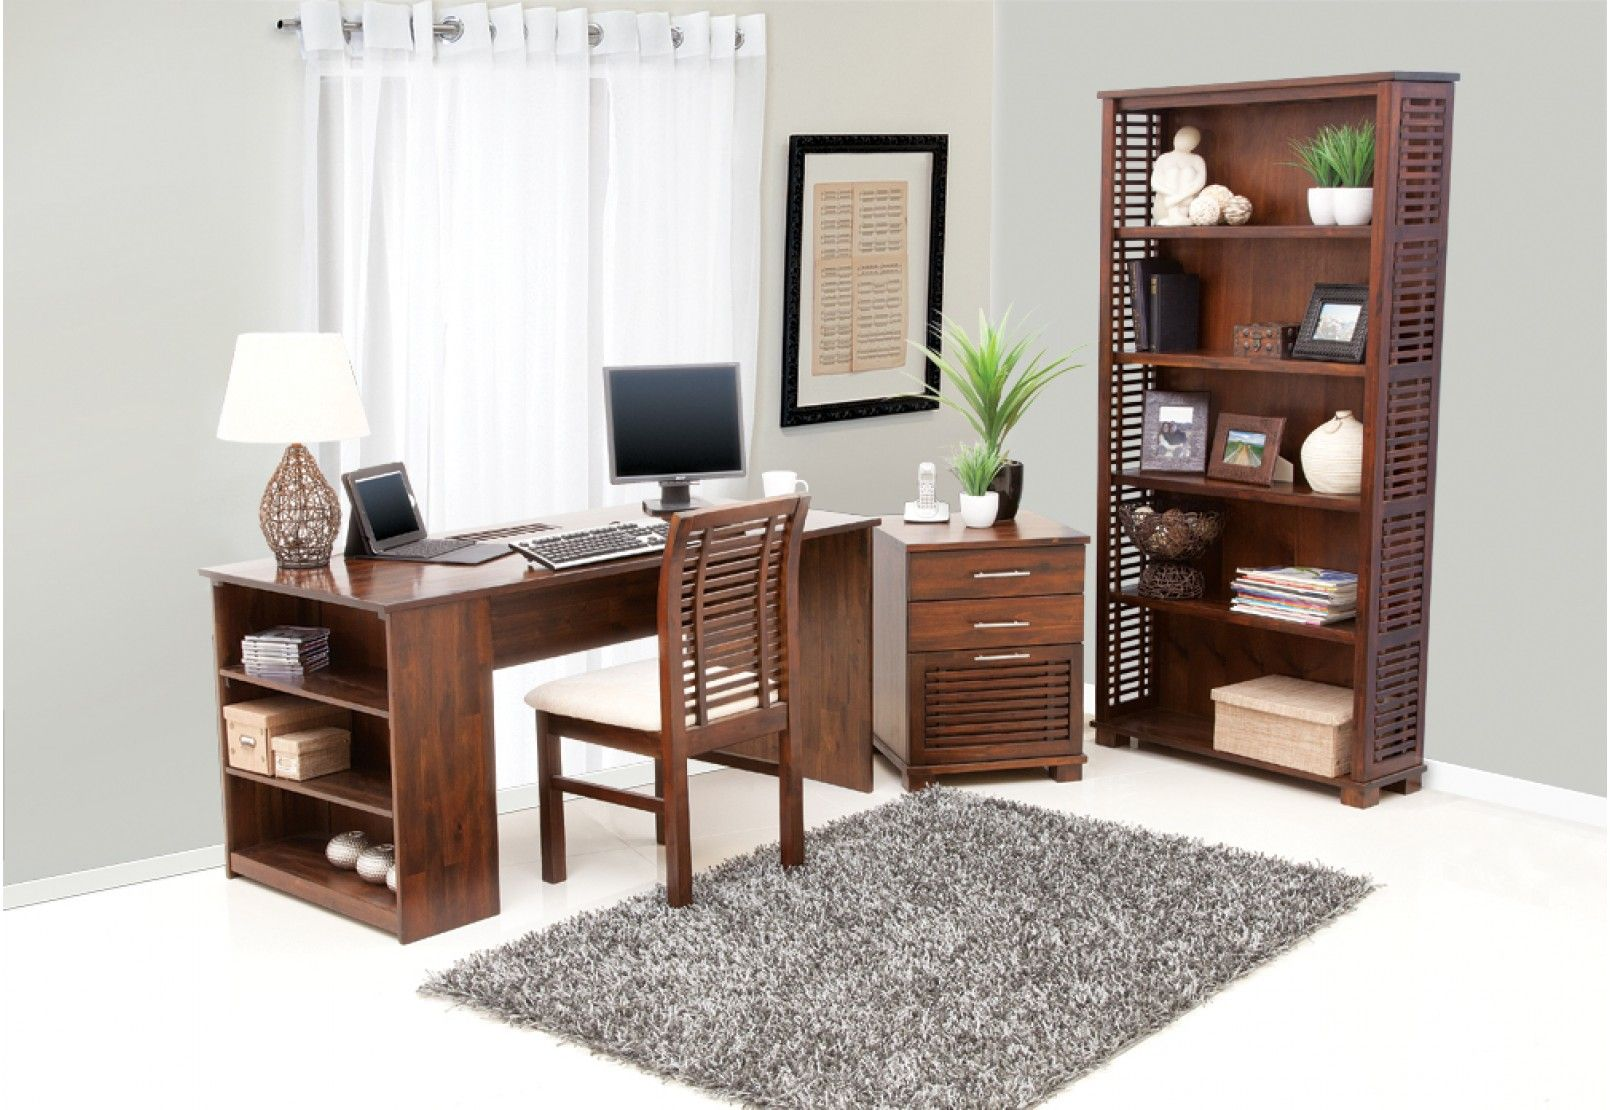 Bring A Touch Of Asia And More Storage Than You Could Dream Of To Your  Office With The Stunning Madang 3 Piece Package Deal. Featuring The Madang  Desk, ...